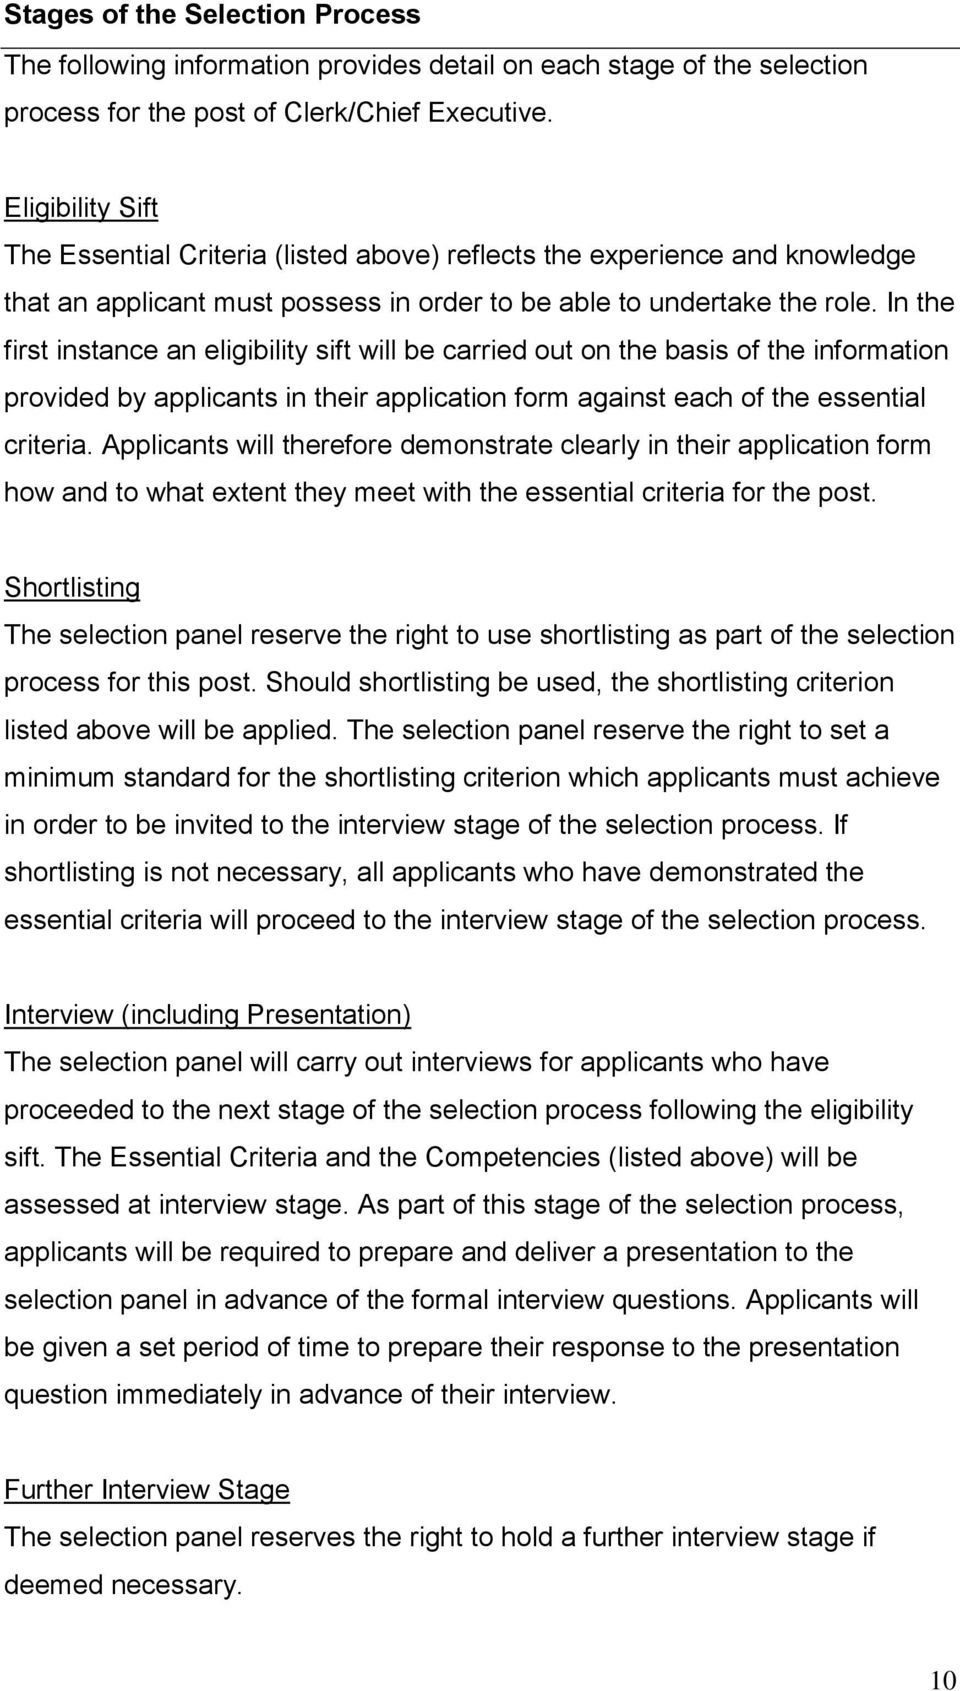 In the first instance an eligibility sift will be carried out on the basis of the information provided by applicants in their application form against each of the essential criteria.